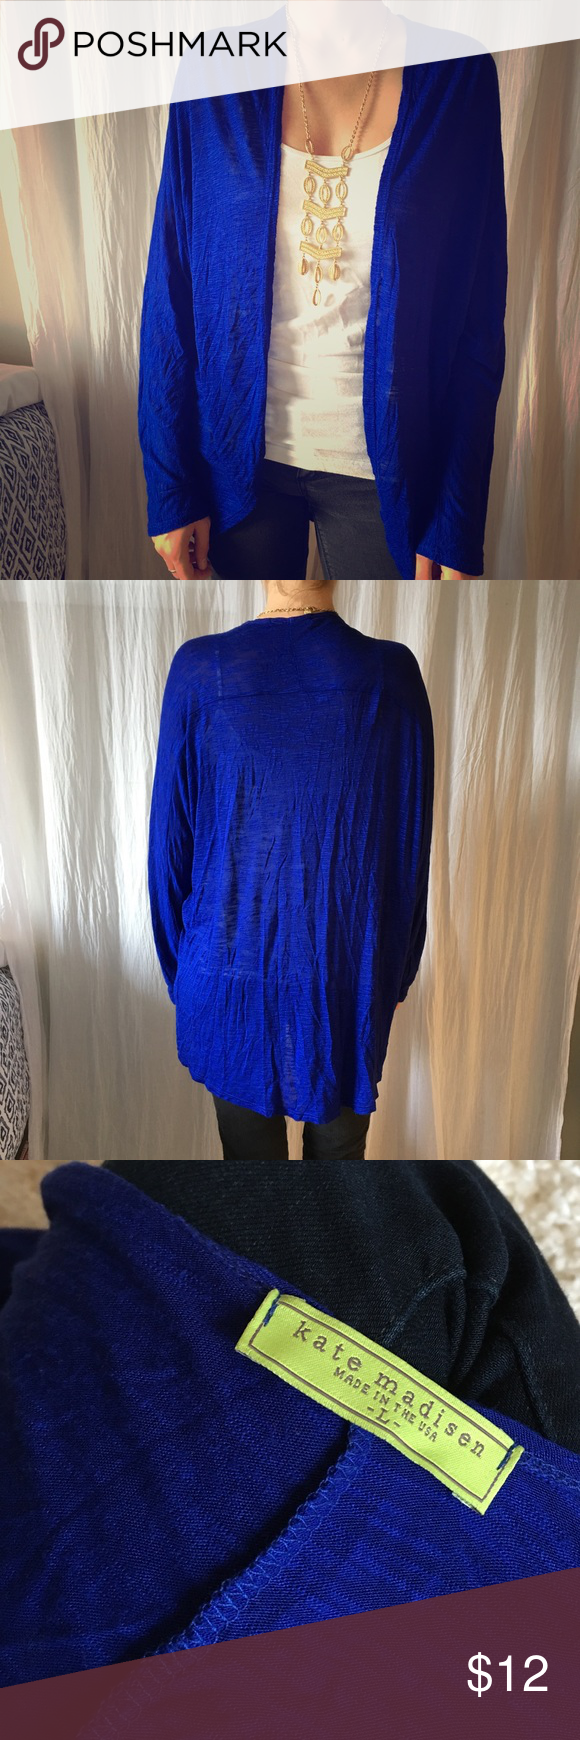 Royal Blue oversized sweater (Lg) | Royal blue sweater, Blue ...